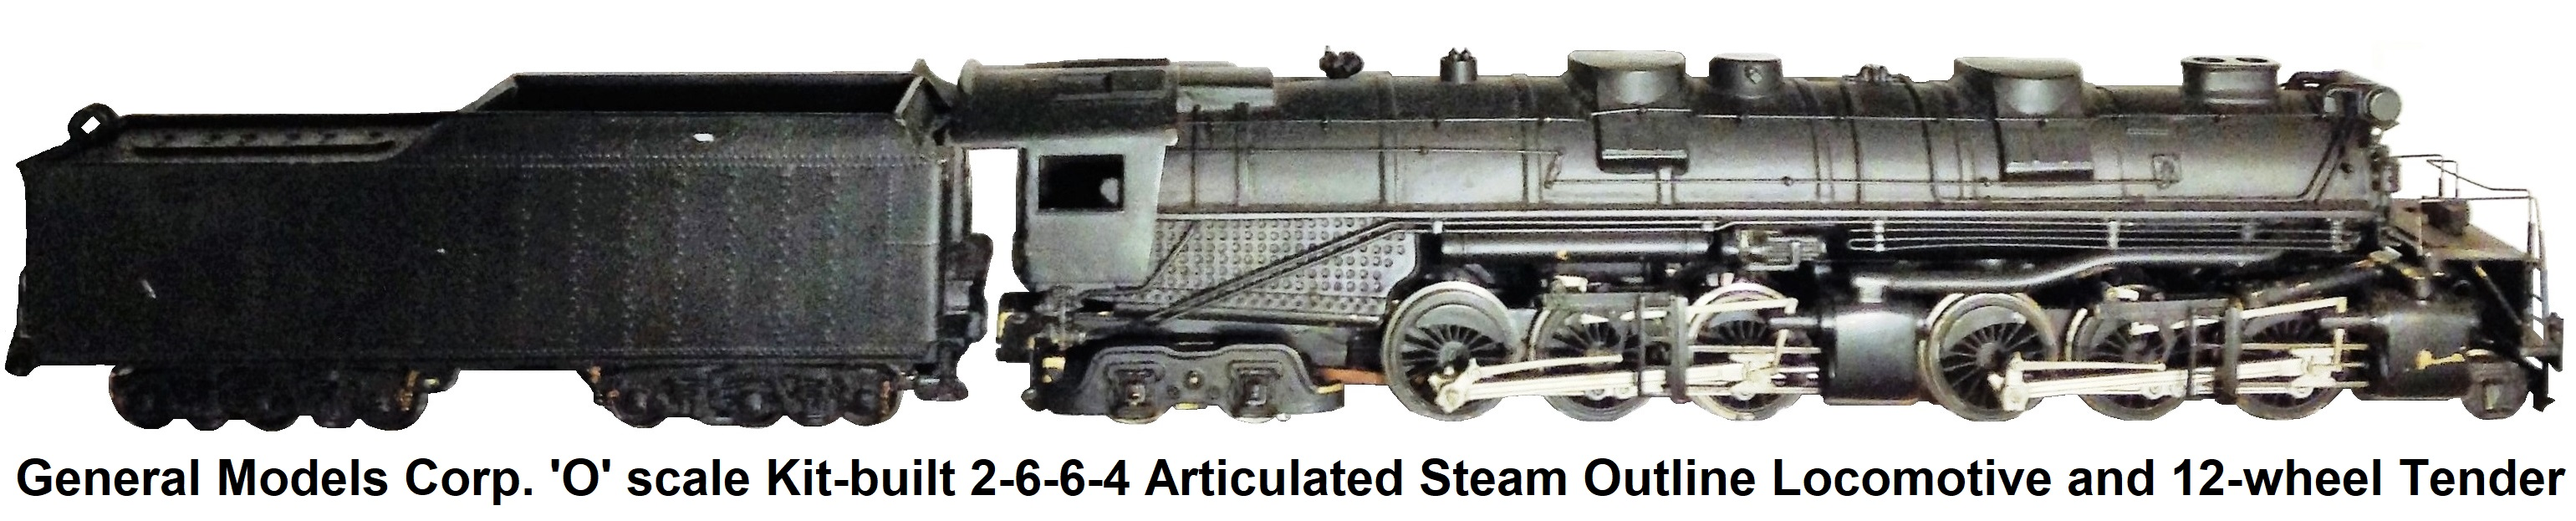 General Models Corp. 'O' scale Kit-built 2-6-6-4 Articulated loco and 12-wheel tender